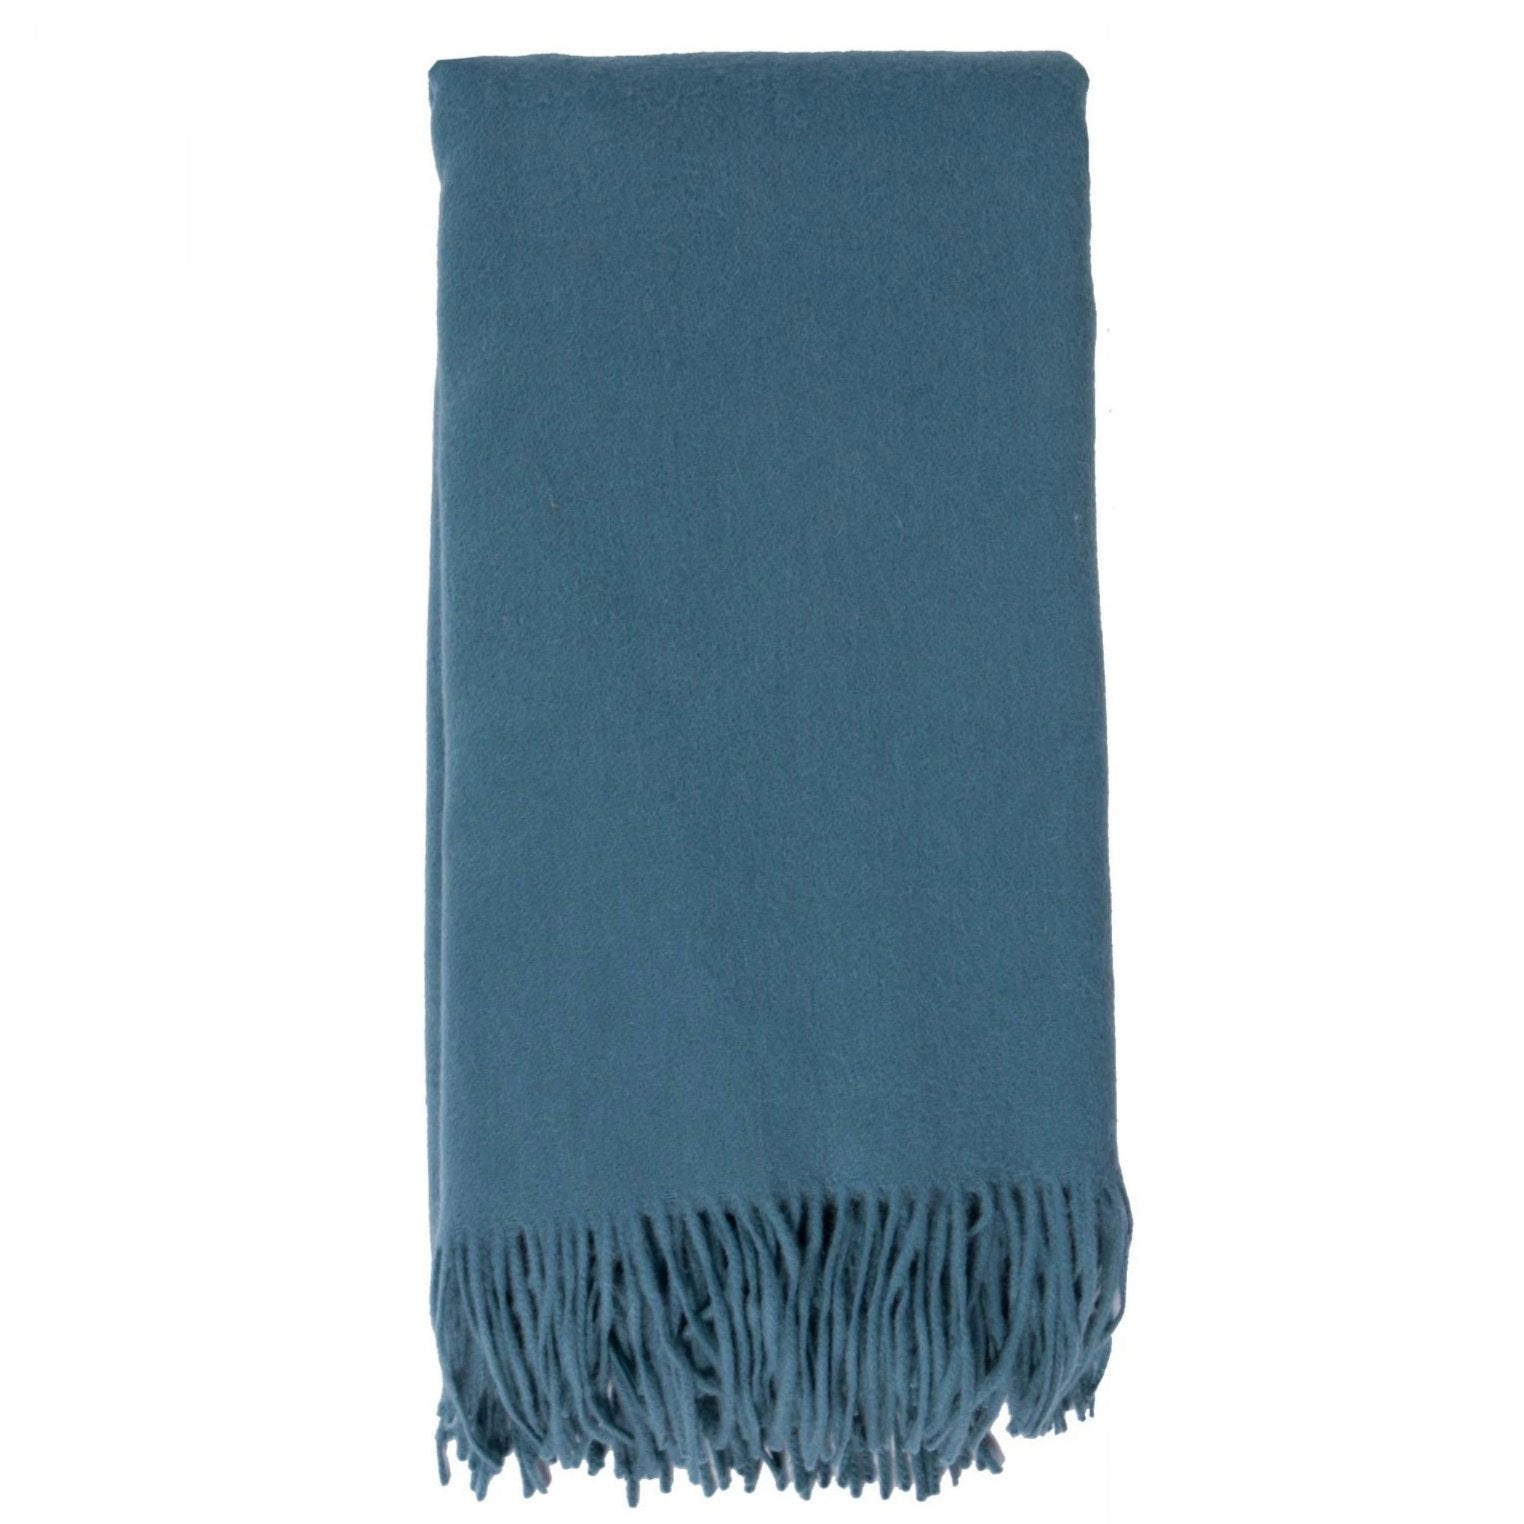 Alashan 100% Cashmere Plain Weave Throw - Evening Sky